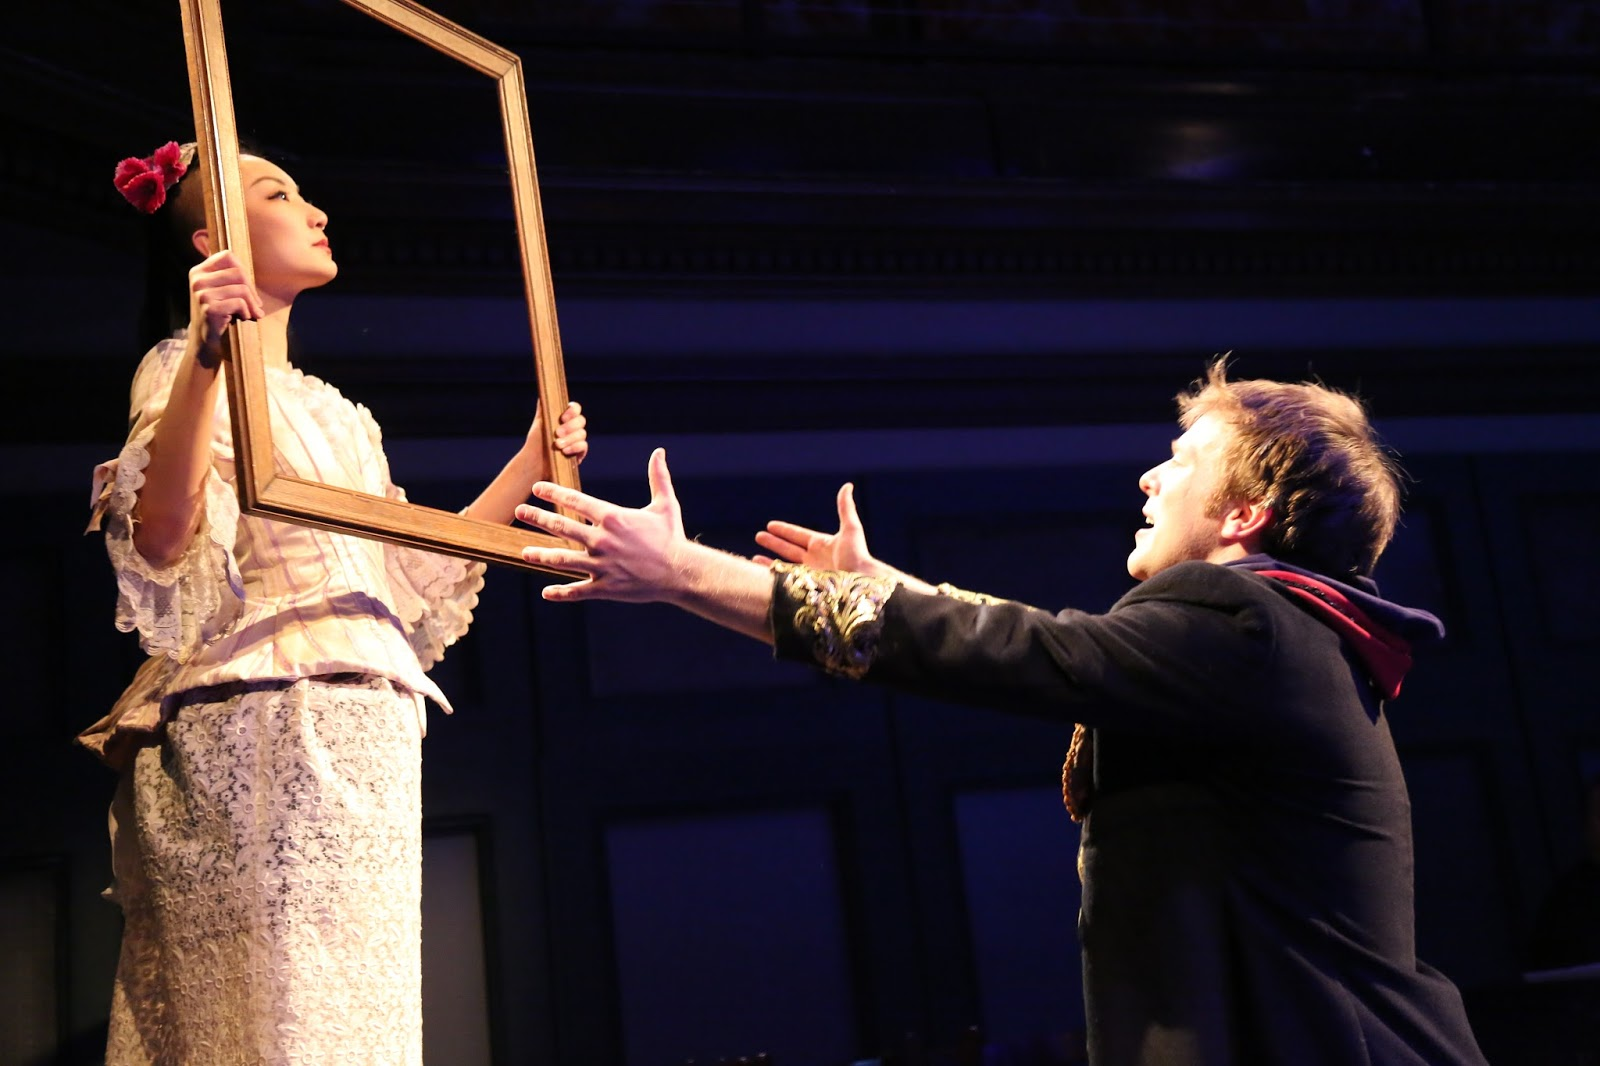 LATE NIGHT LAVENDER: A LOST SHAKESPEARE PLAY GROWS IN